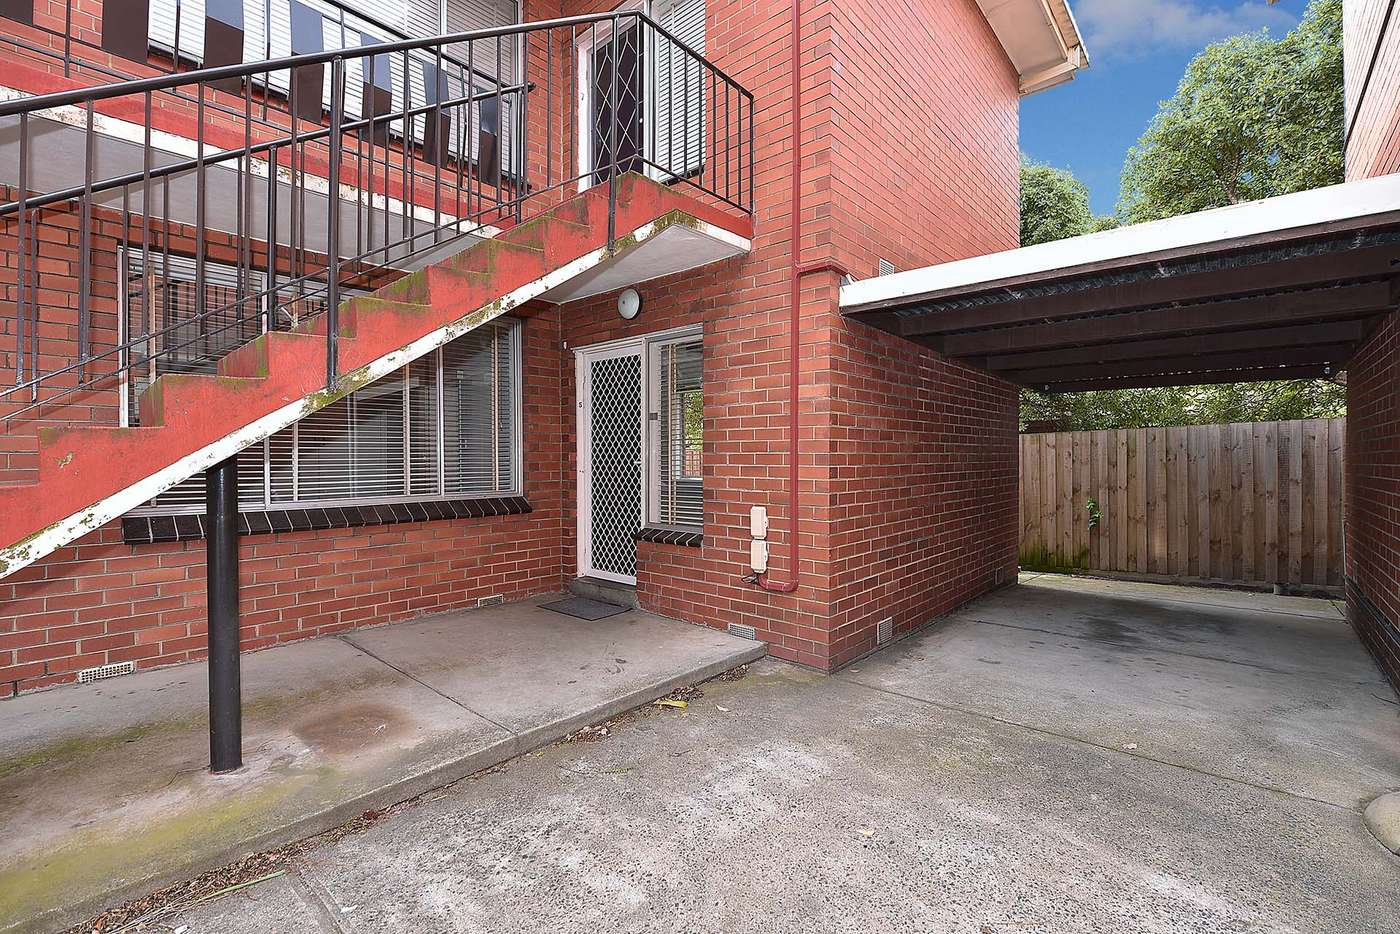 Main view of Homely apartment listing, 5/15 Sunray Avenue, Cheltenham VIC 3192